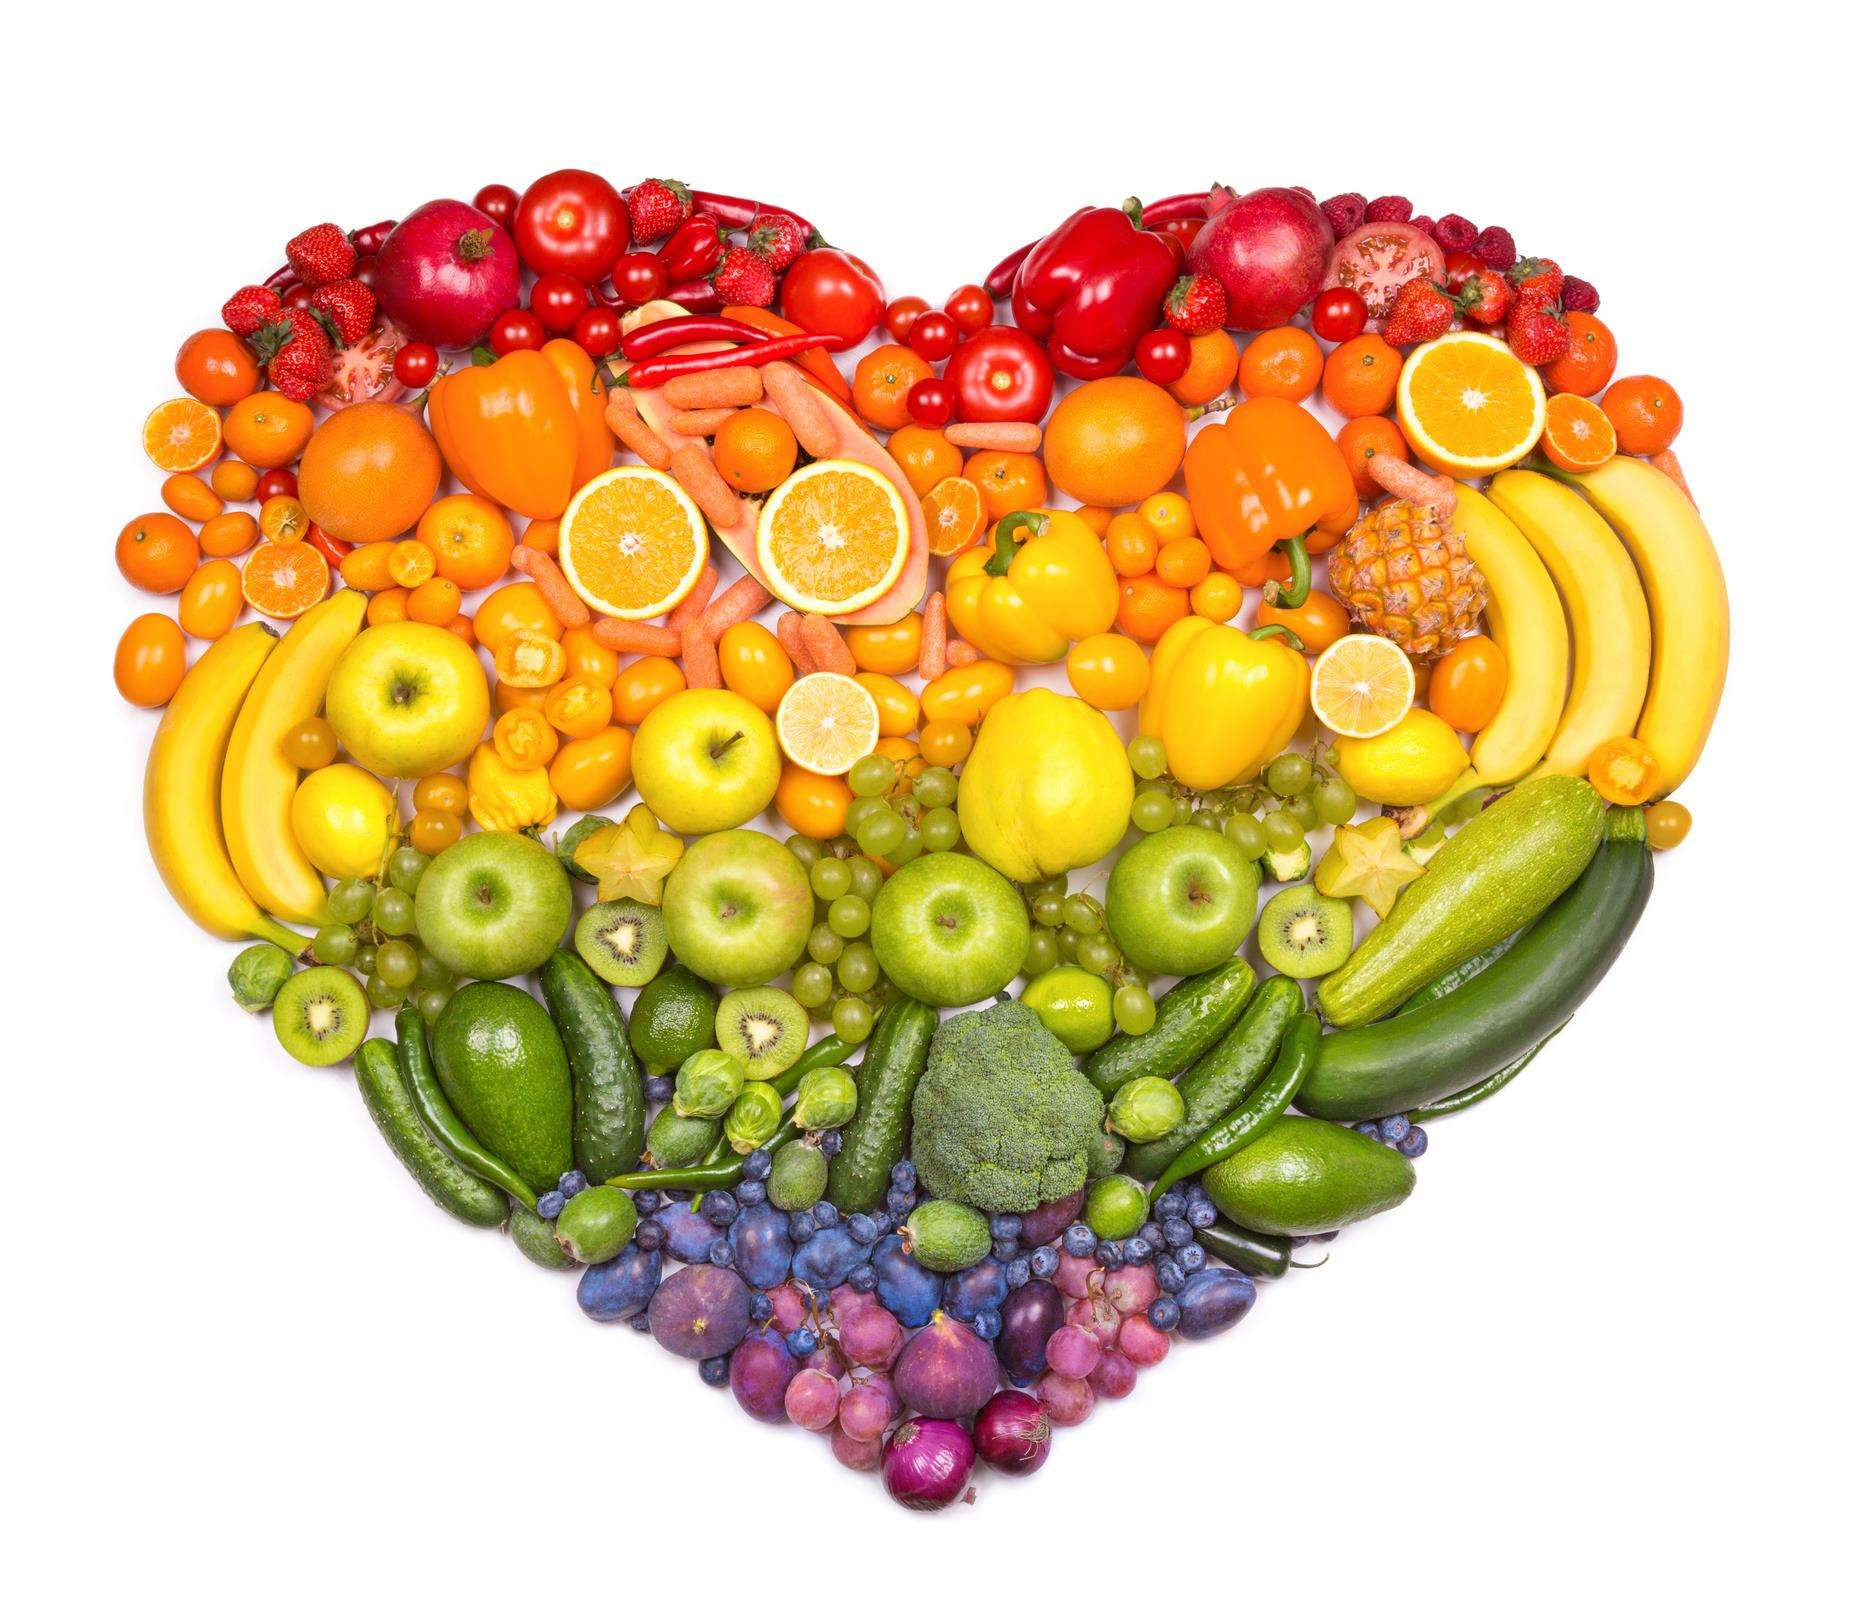 Eat a rainbow of fruits and vegetables to feel gooood!